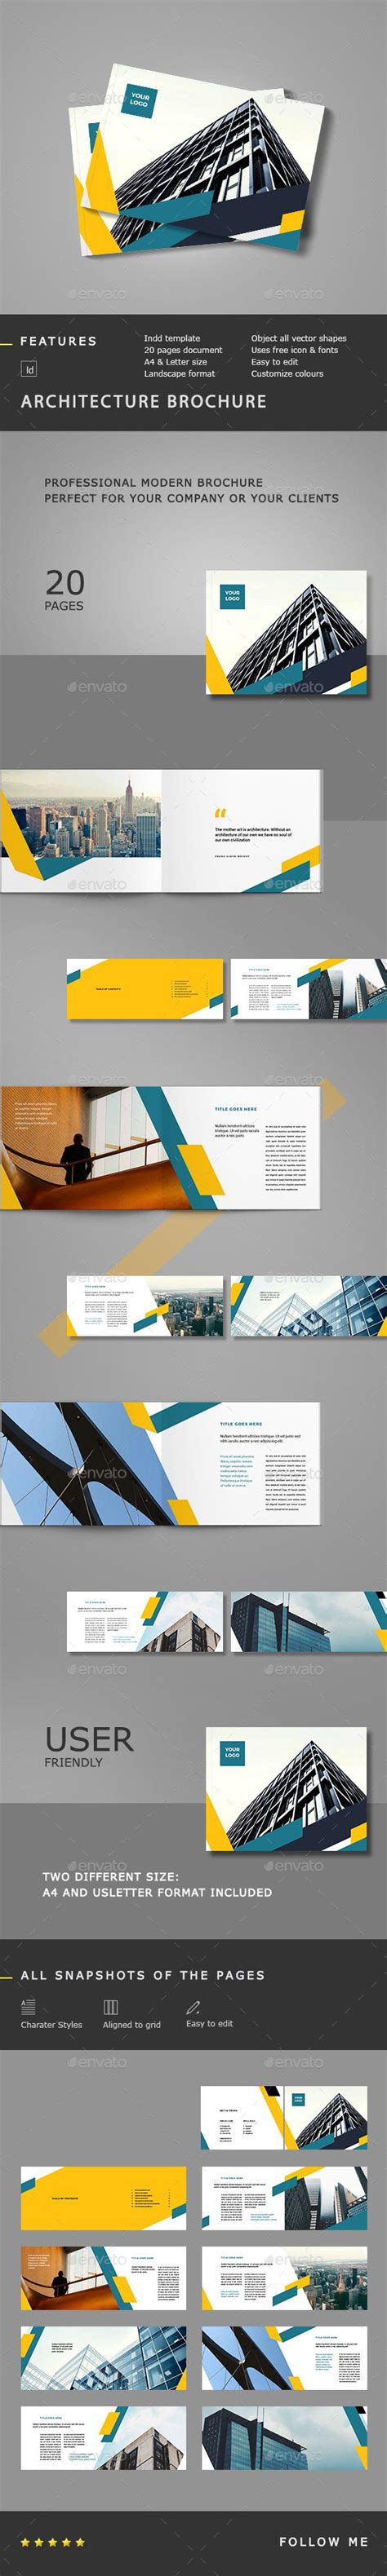 change layout to landscape in indesign 95 best images about brochure inspiration on pinterest